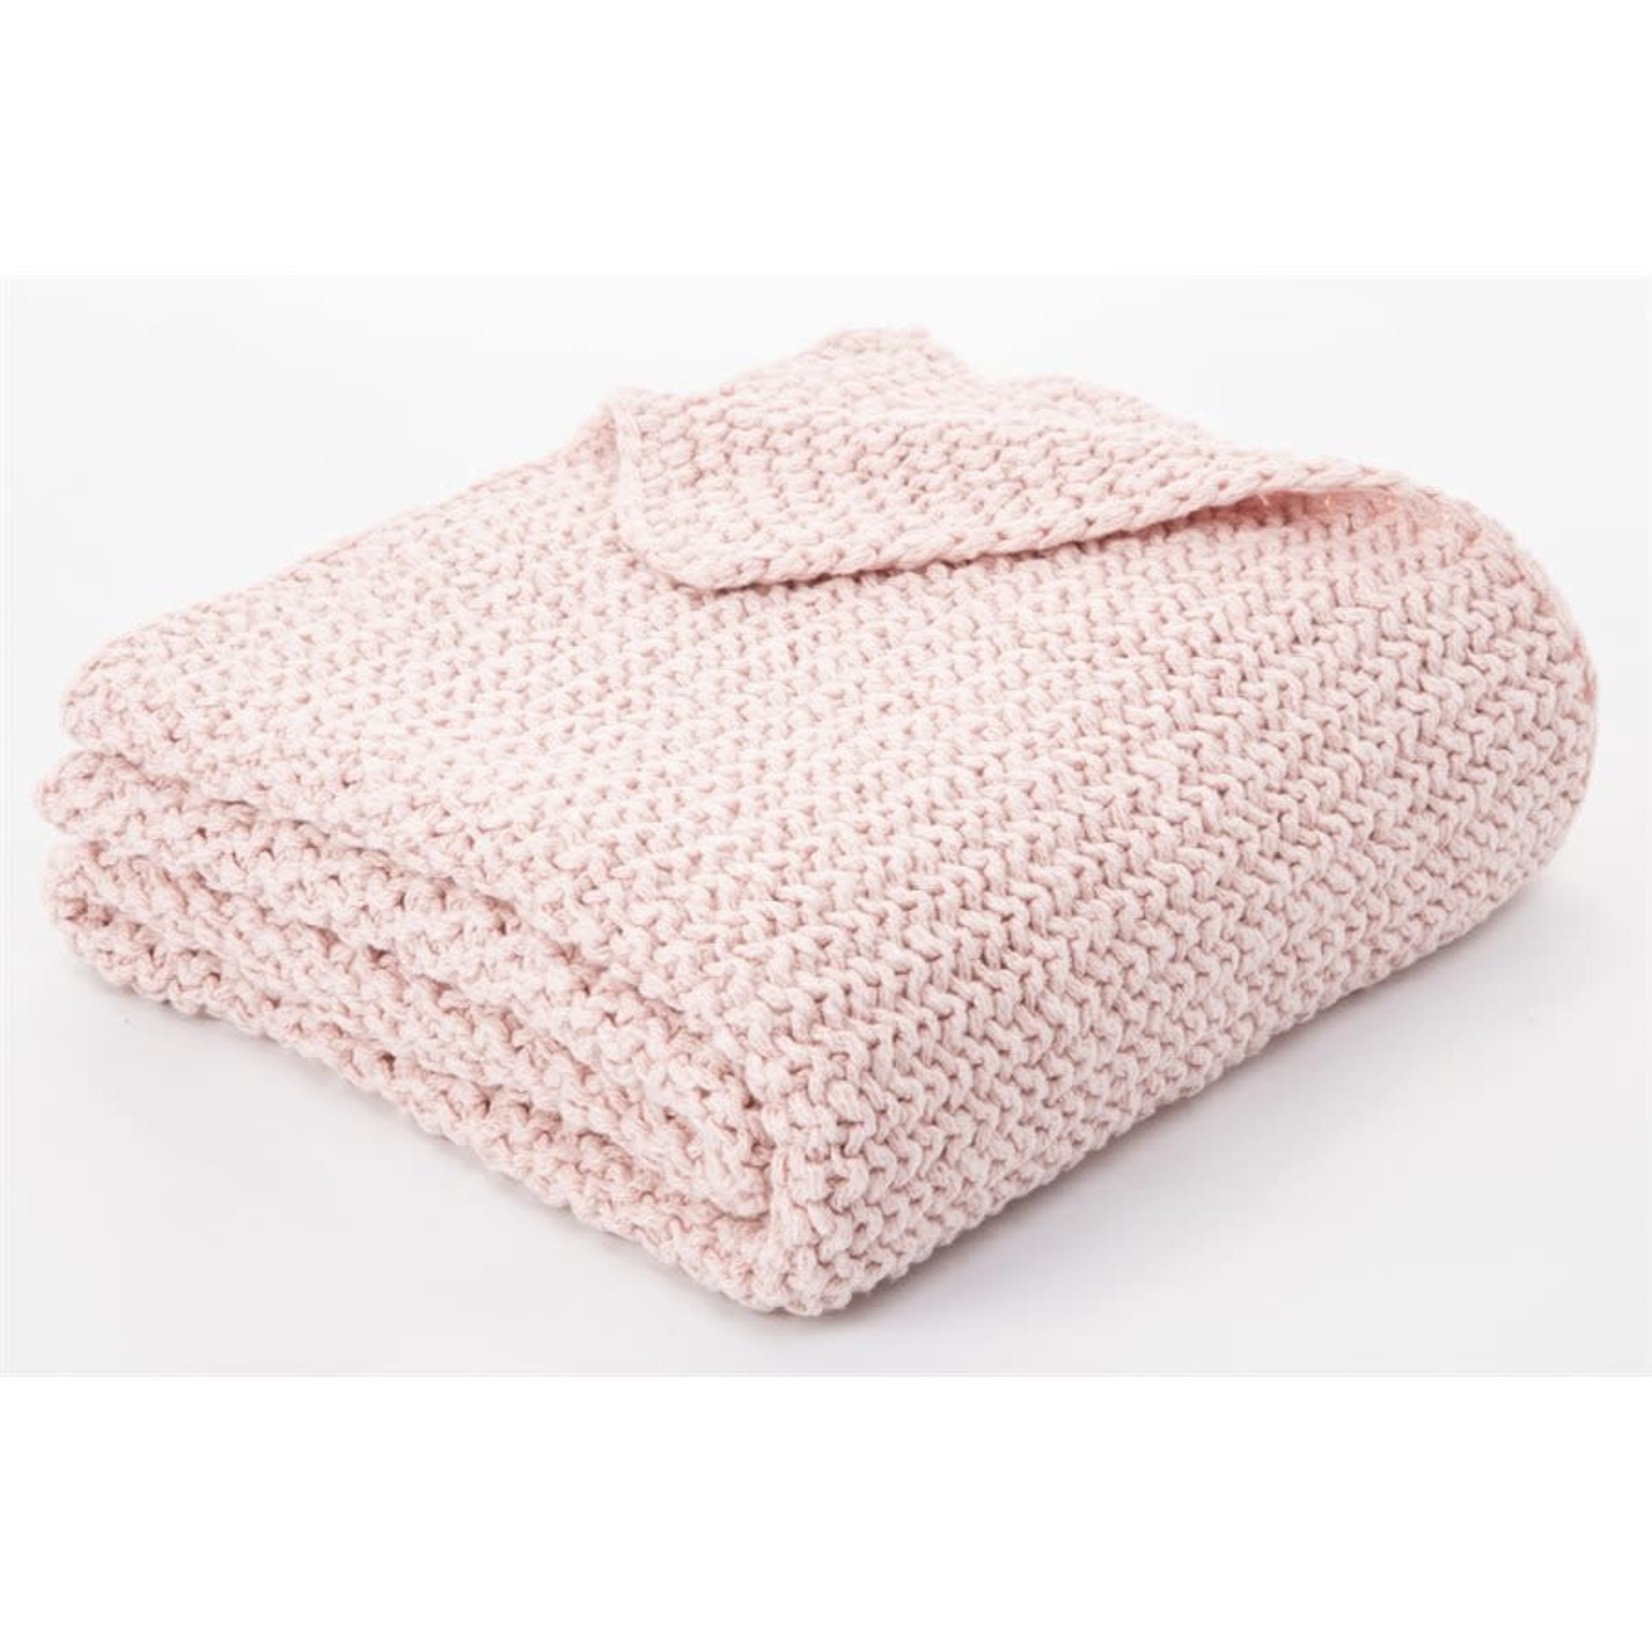 Bulky Pink Knitted Throw